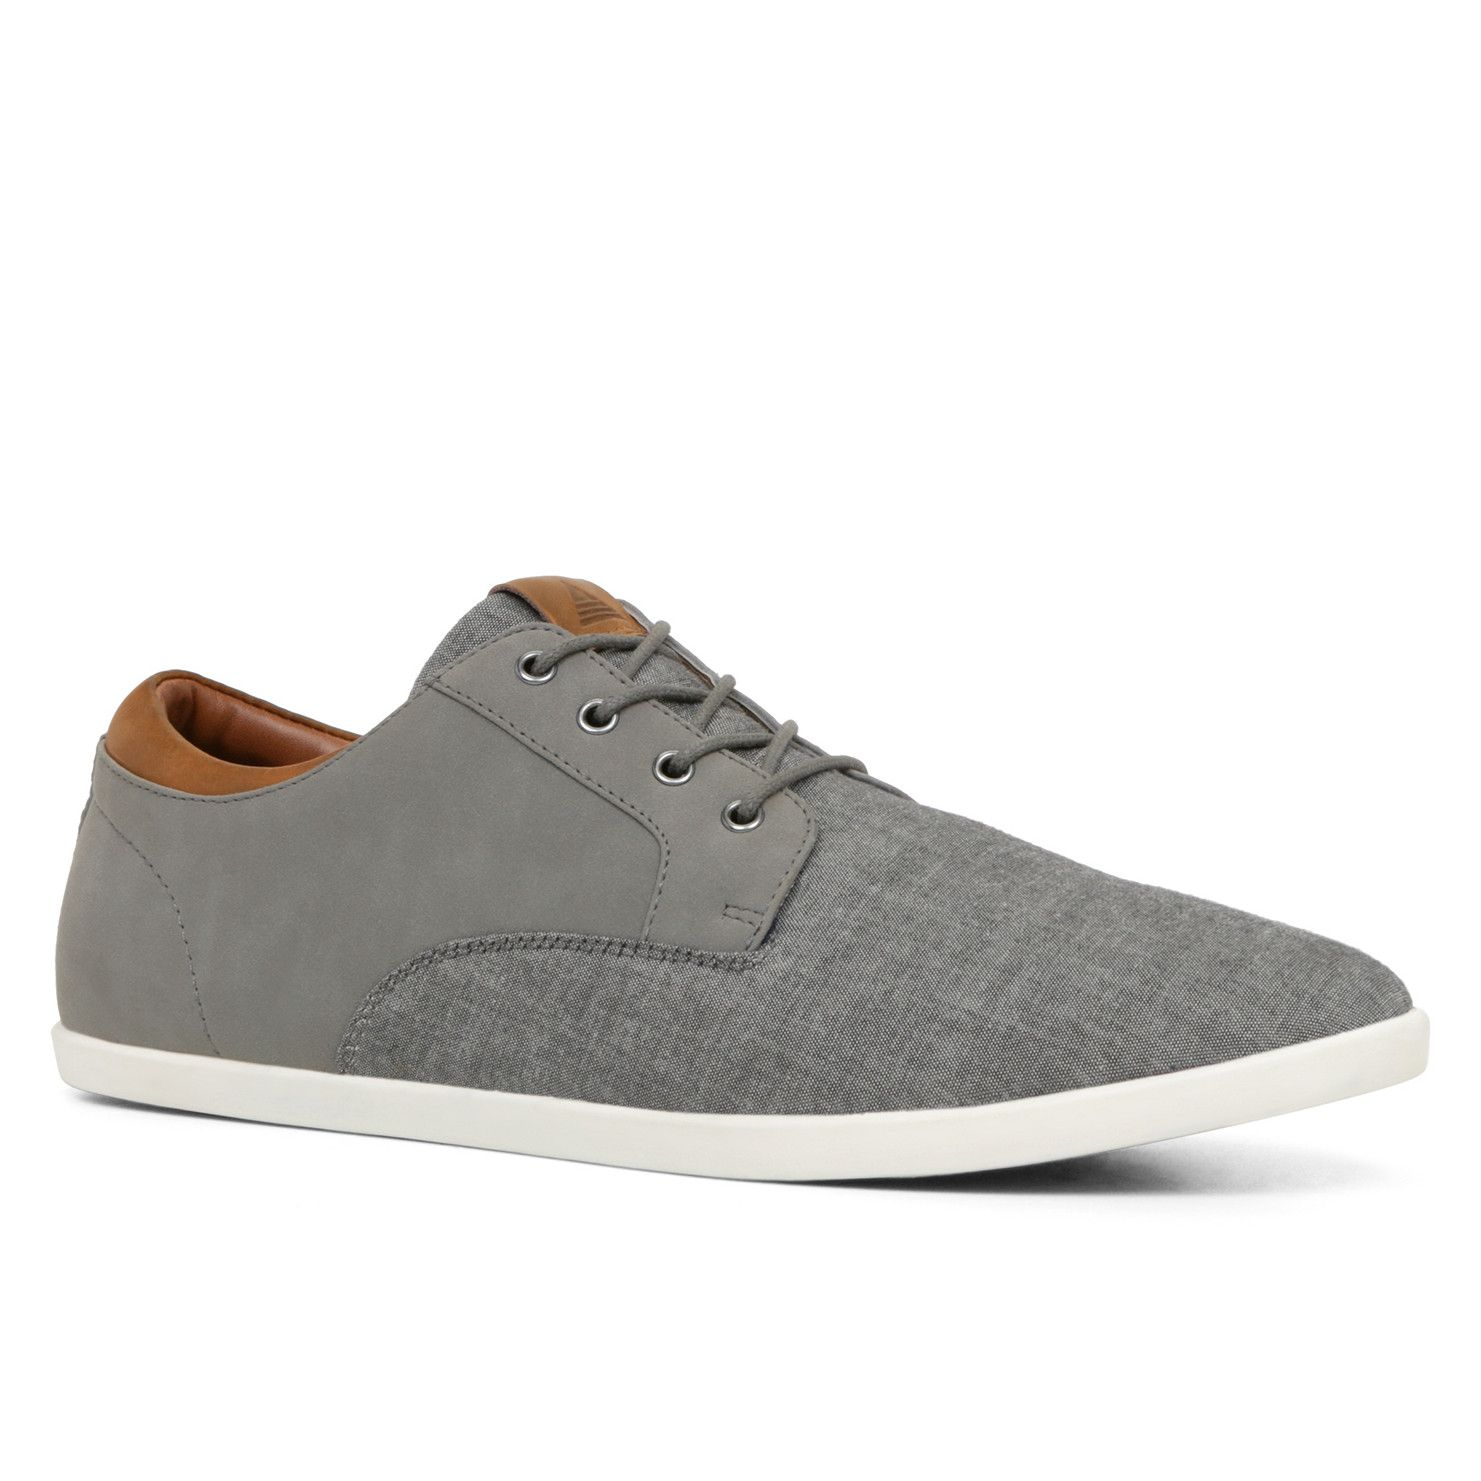 743a97d572b INGOMER Sneakers | Men's Shoes | ALDOShoes.com | Things to get your ...